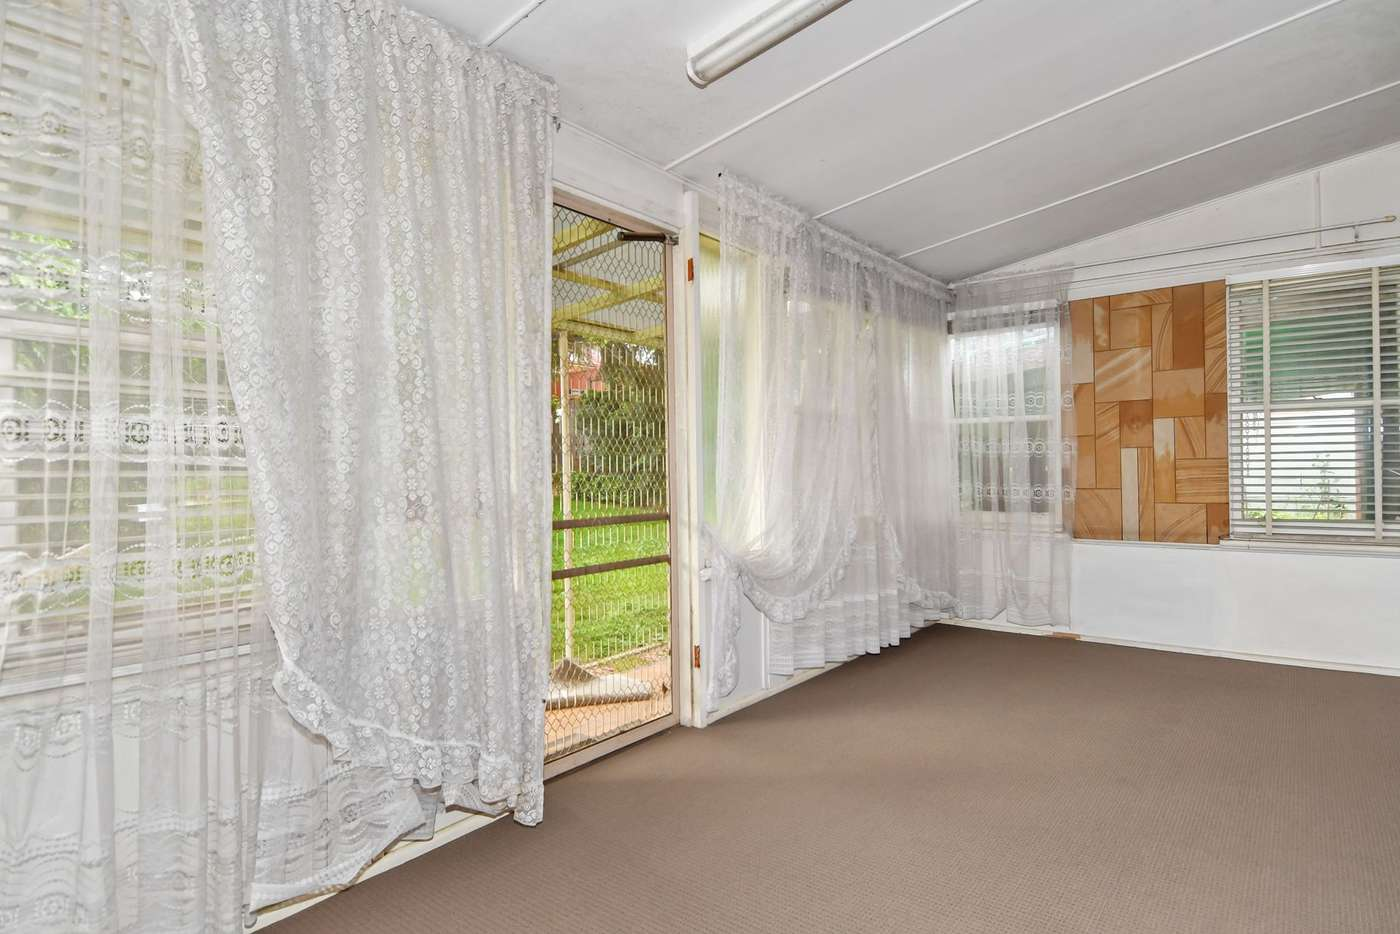 Sixth view of Homely house listing, 351 Stewart Street, Bathurst NSW 2795